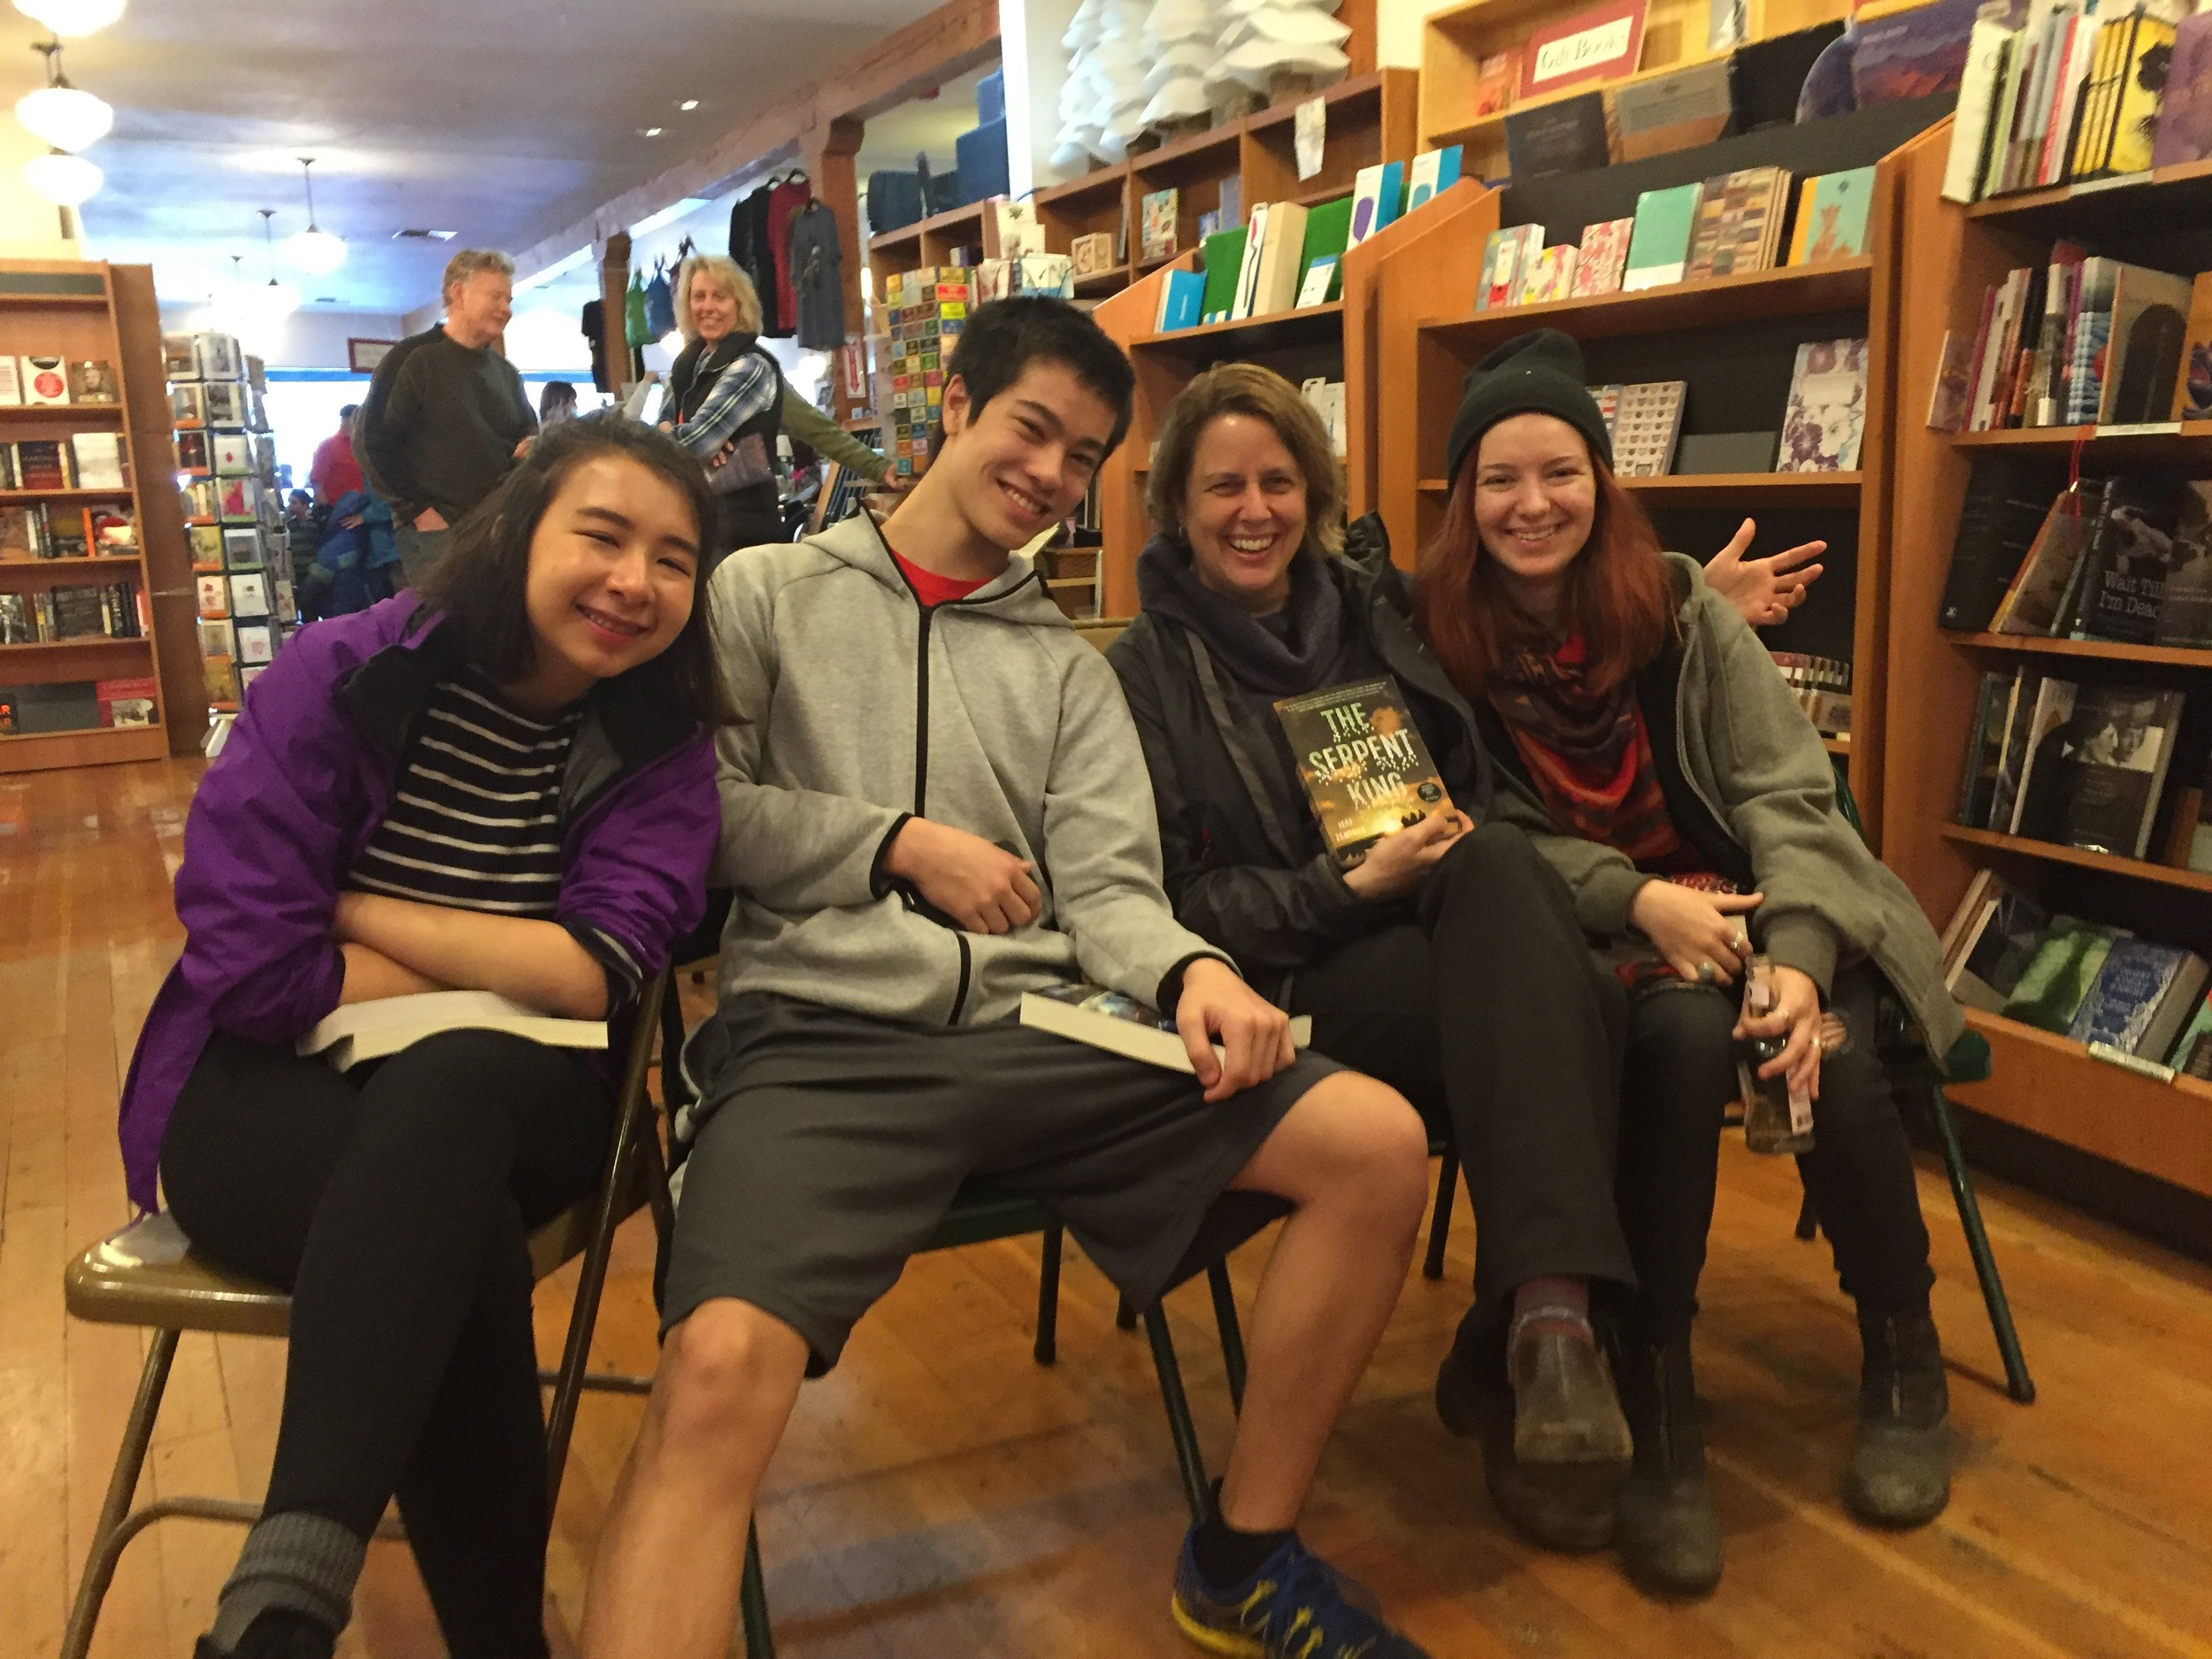 The Teen Advisory Board at Eagle Harbor Book Co.in Winslow, WA. And me giving a little shout out to  The Serpent King, by Jeff Zentner. (Photo Credit: Victoria Irwin)